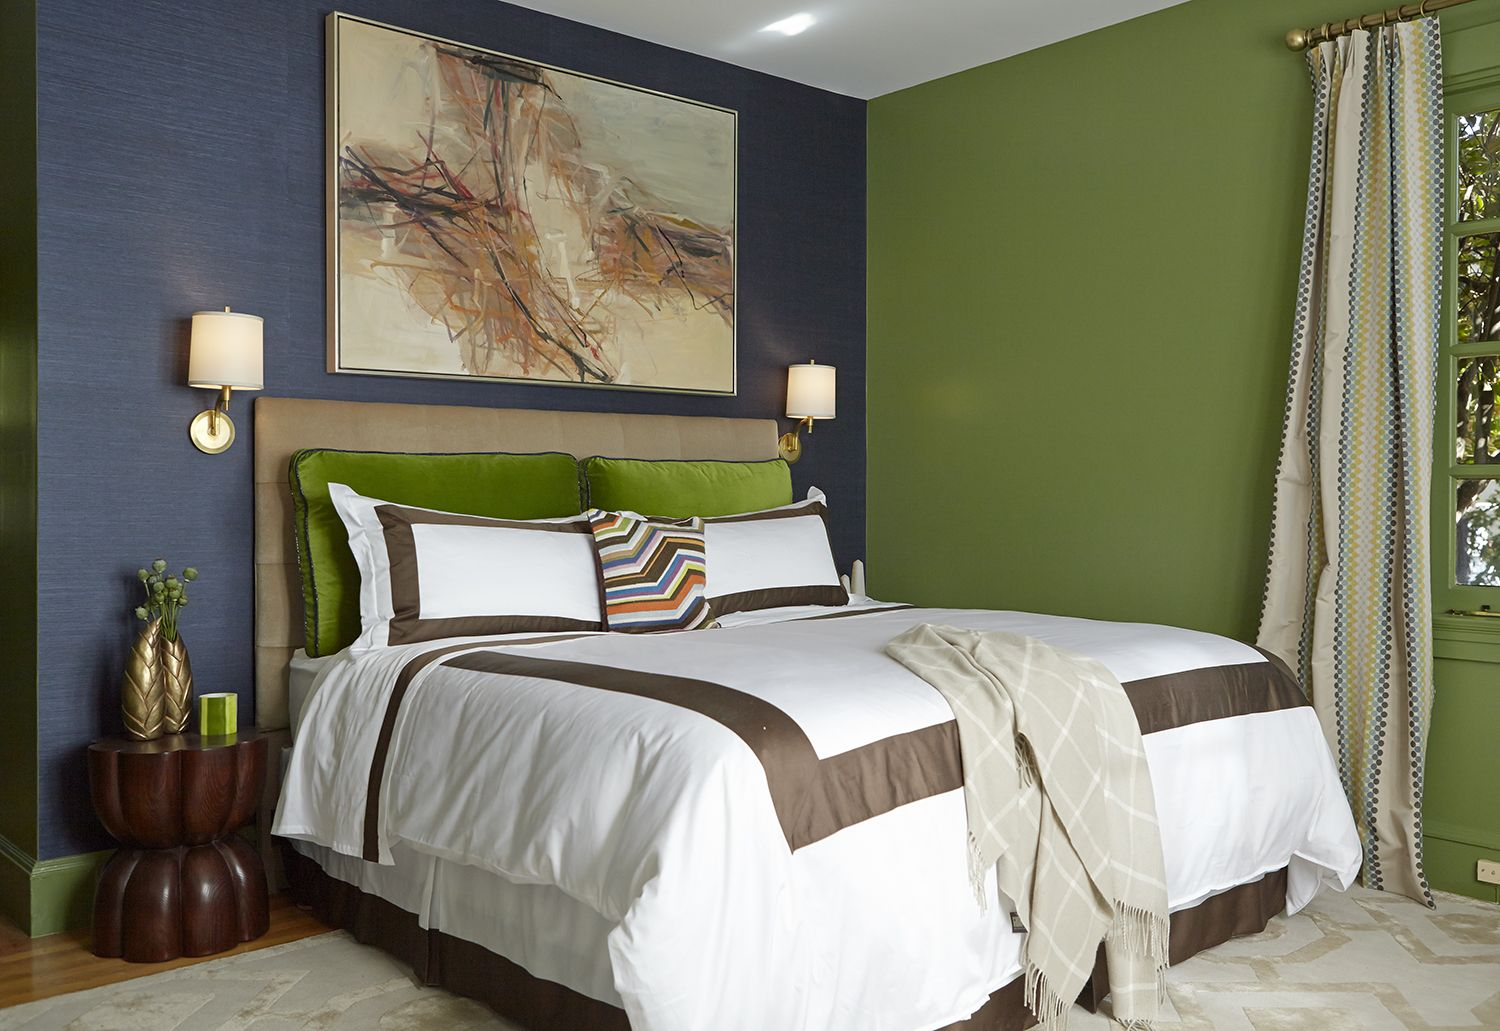 The Master Bedroom 39 S Blue And Green Color Scheme Is Brightened With Crisp White Linens With